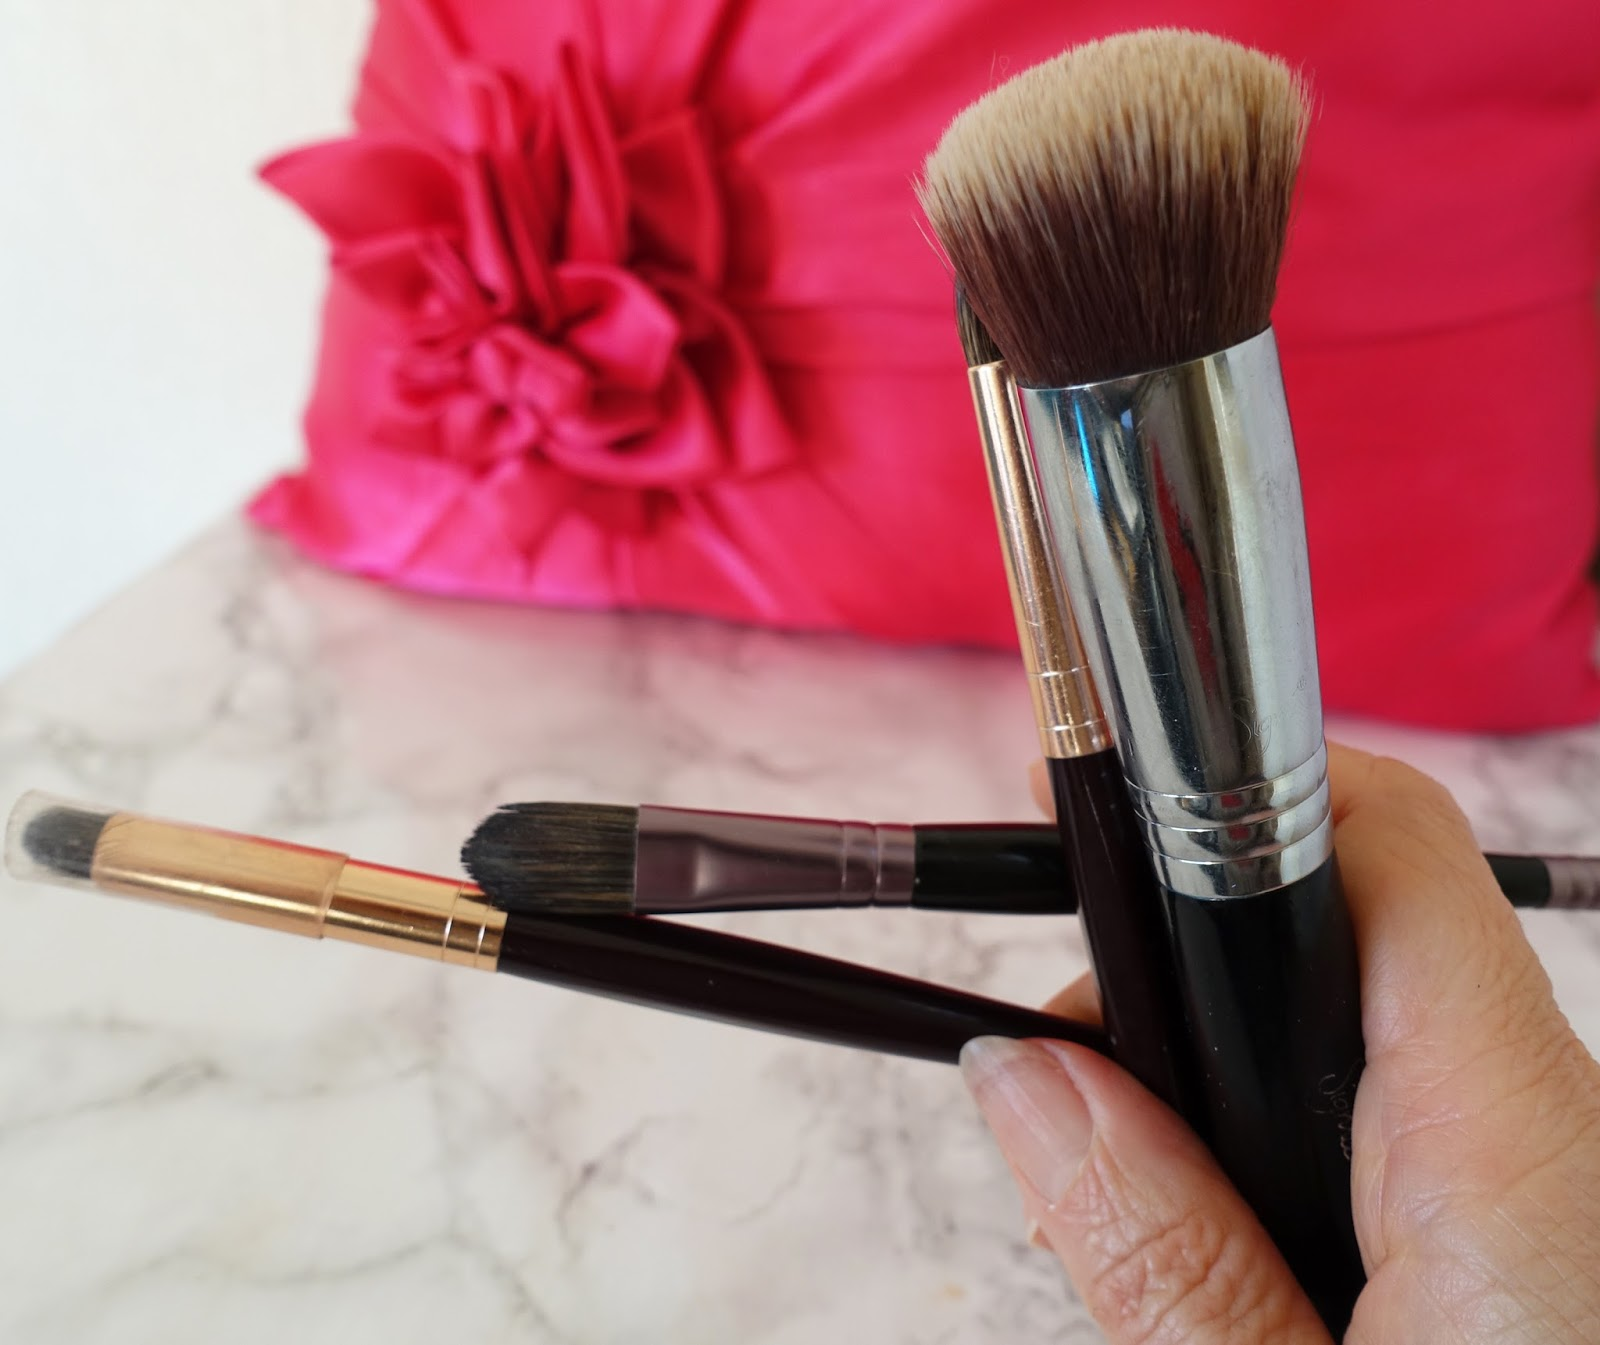 Image showing a woman's make-up brushes